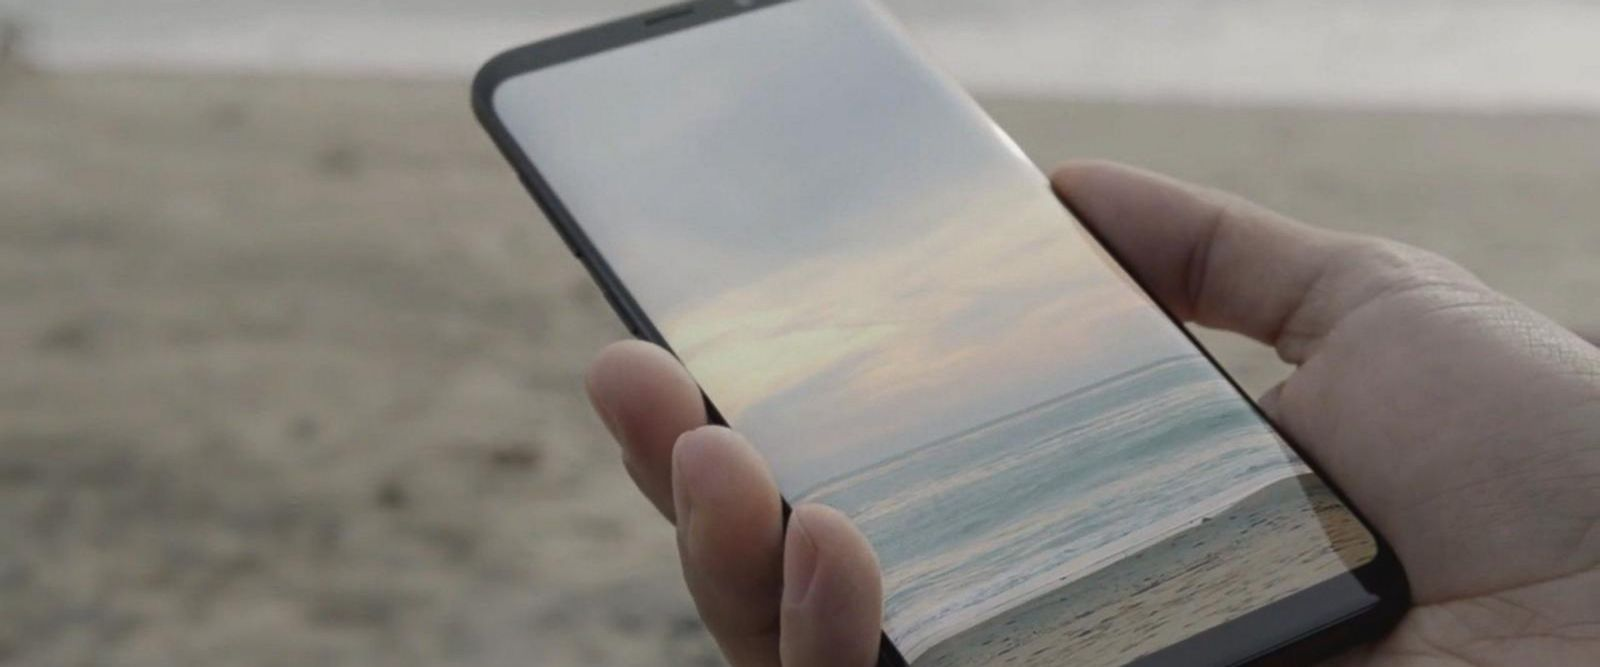 VIDEO: First look at Samsung Galaxy Note 8